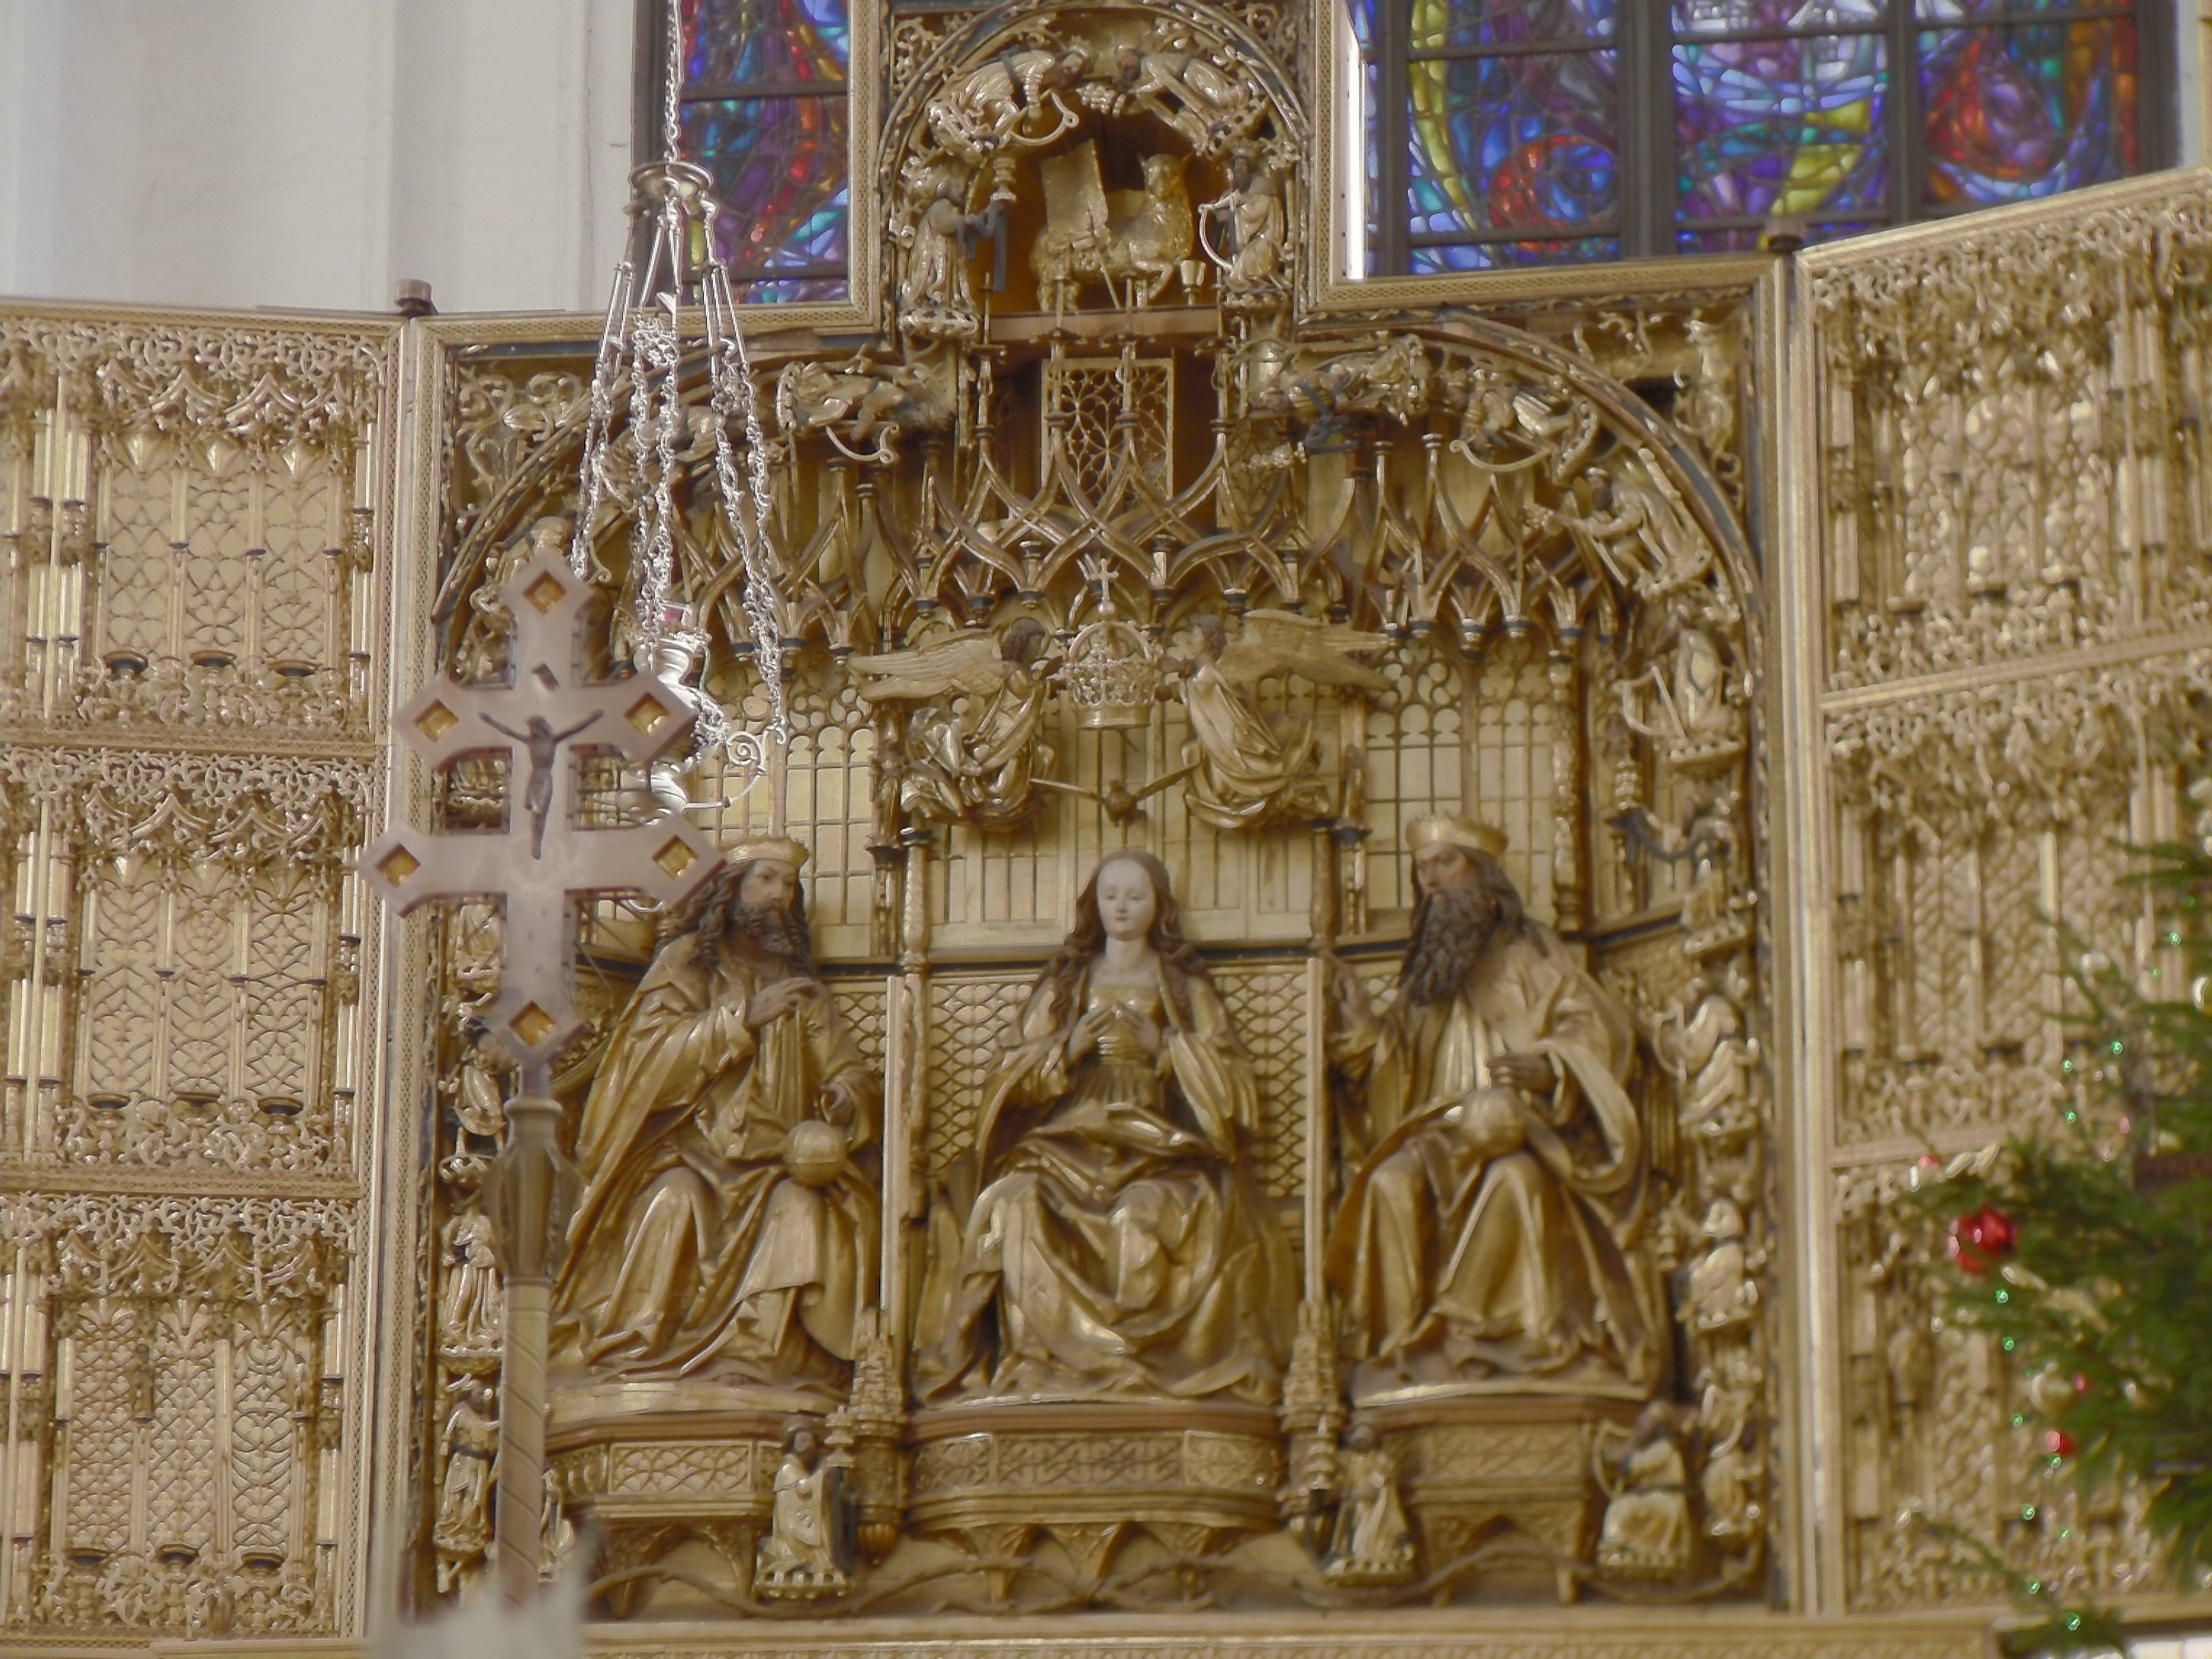 St. Mary's Church altar, Gdańsk, Poland